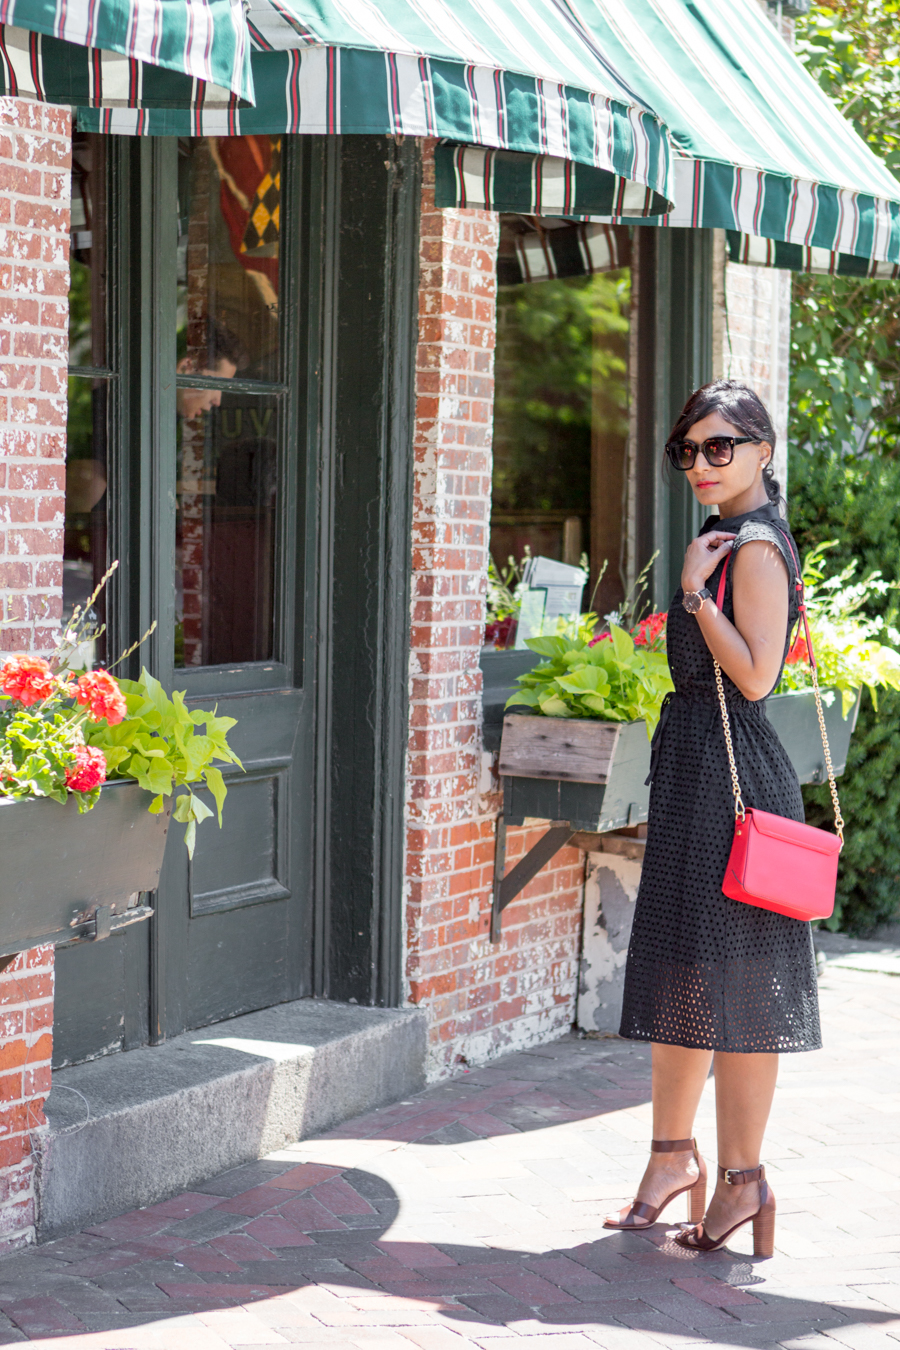 summer style, summer essentials, classic, eyelet, work style, office style, corporate chic, work to weekend, casual dress, cluse, ann taylor, whowhatwear, target style, affordable style, outfit under $100, boston blogger, street style, newburyport, boston summer, petite fashion, style tips, outfit ideas